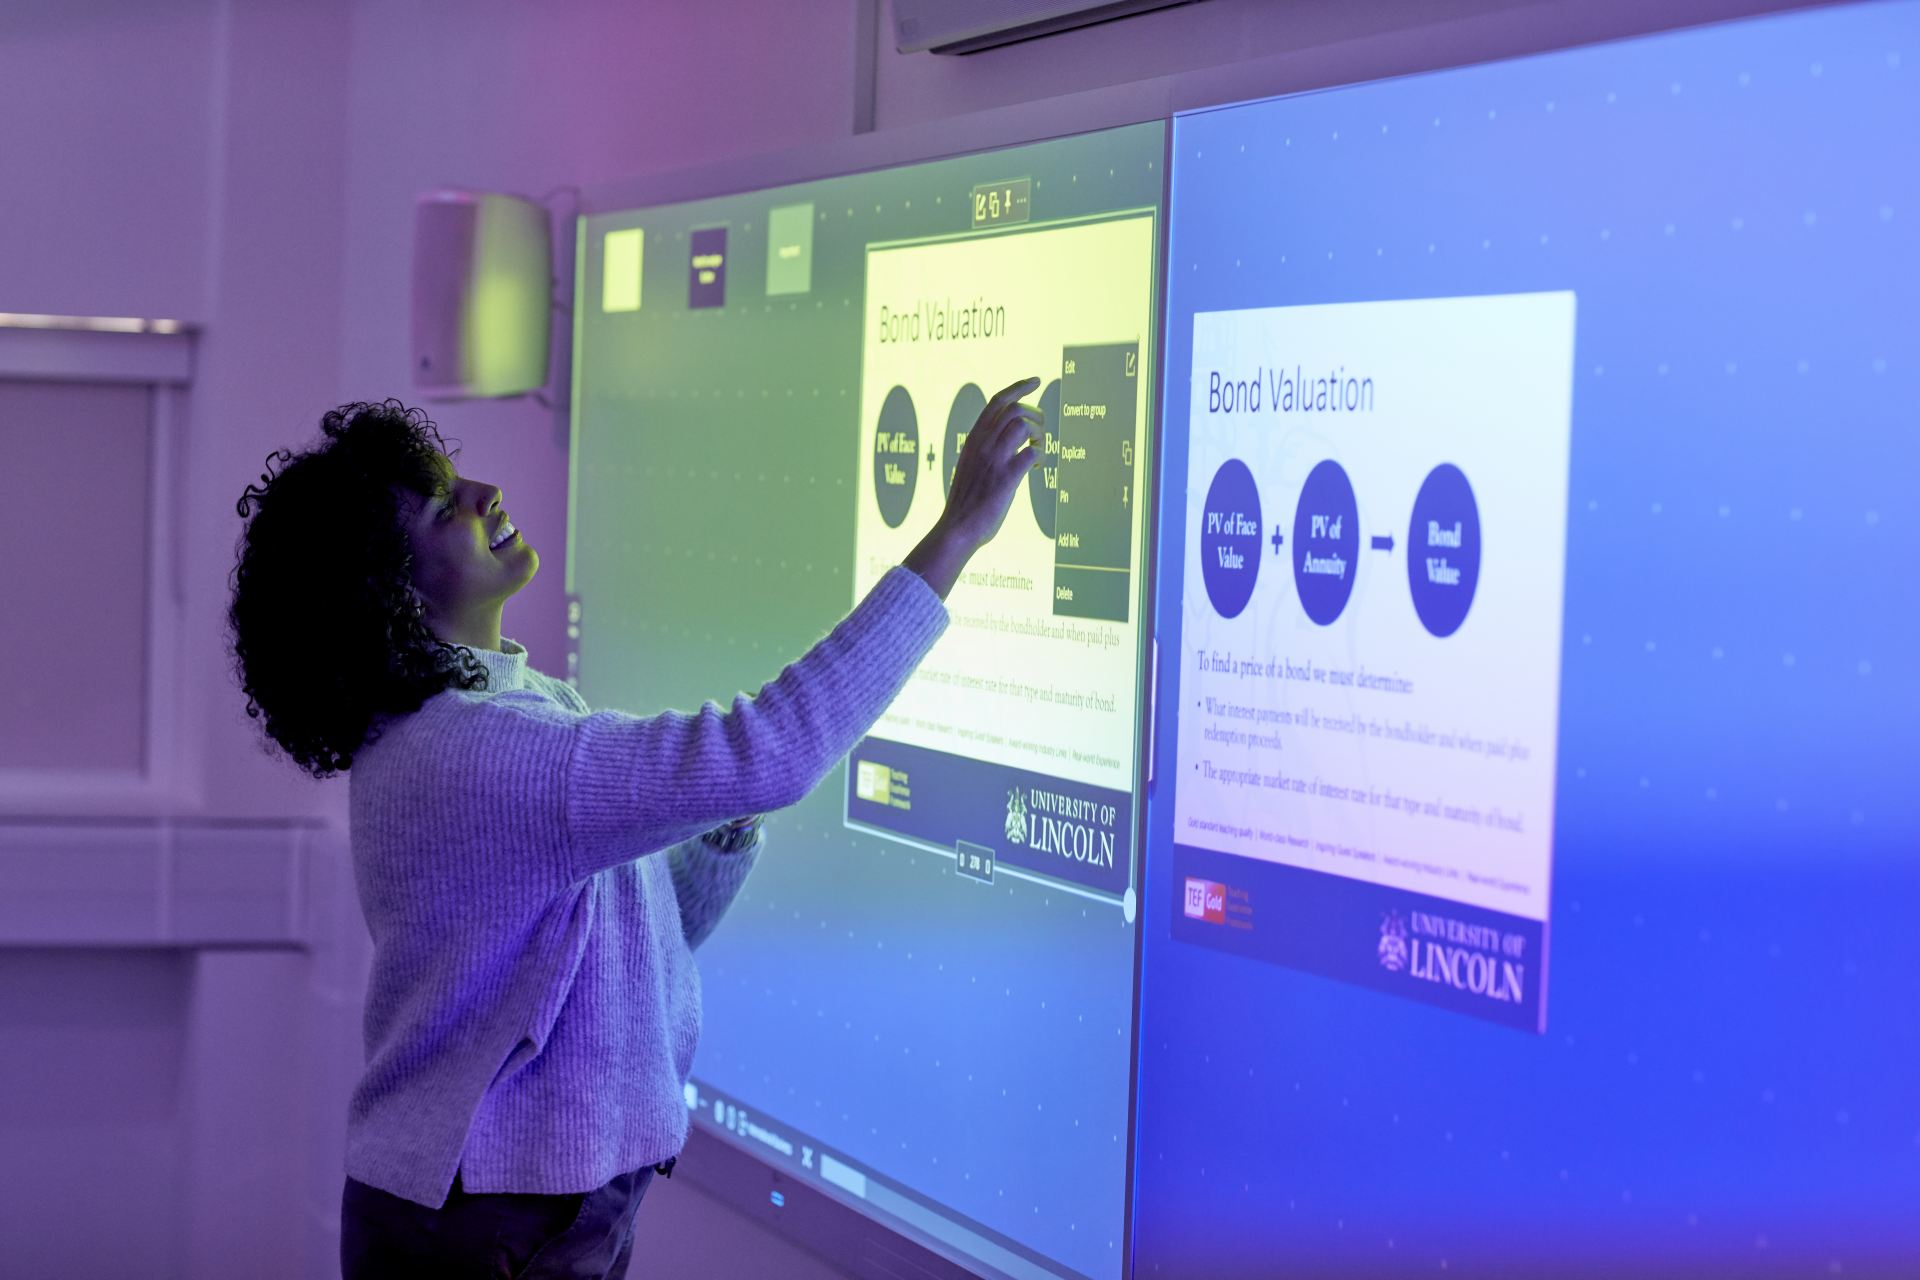 A student using the touchscreen display in the Concept Suite